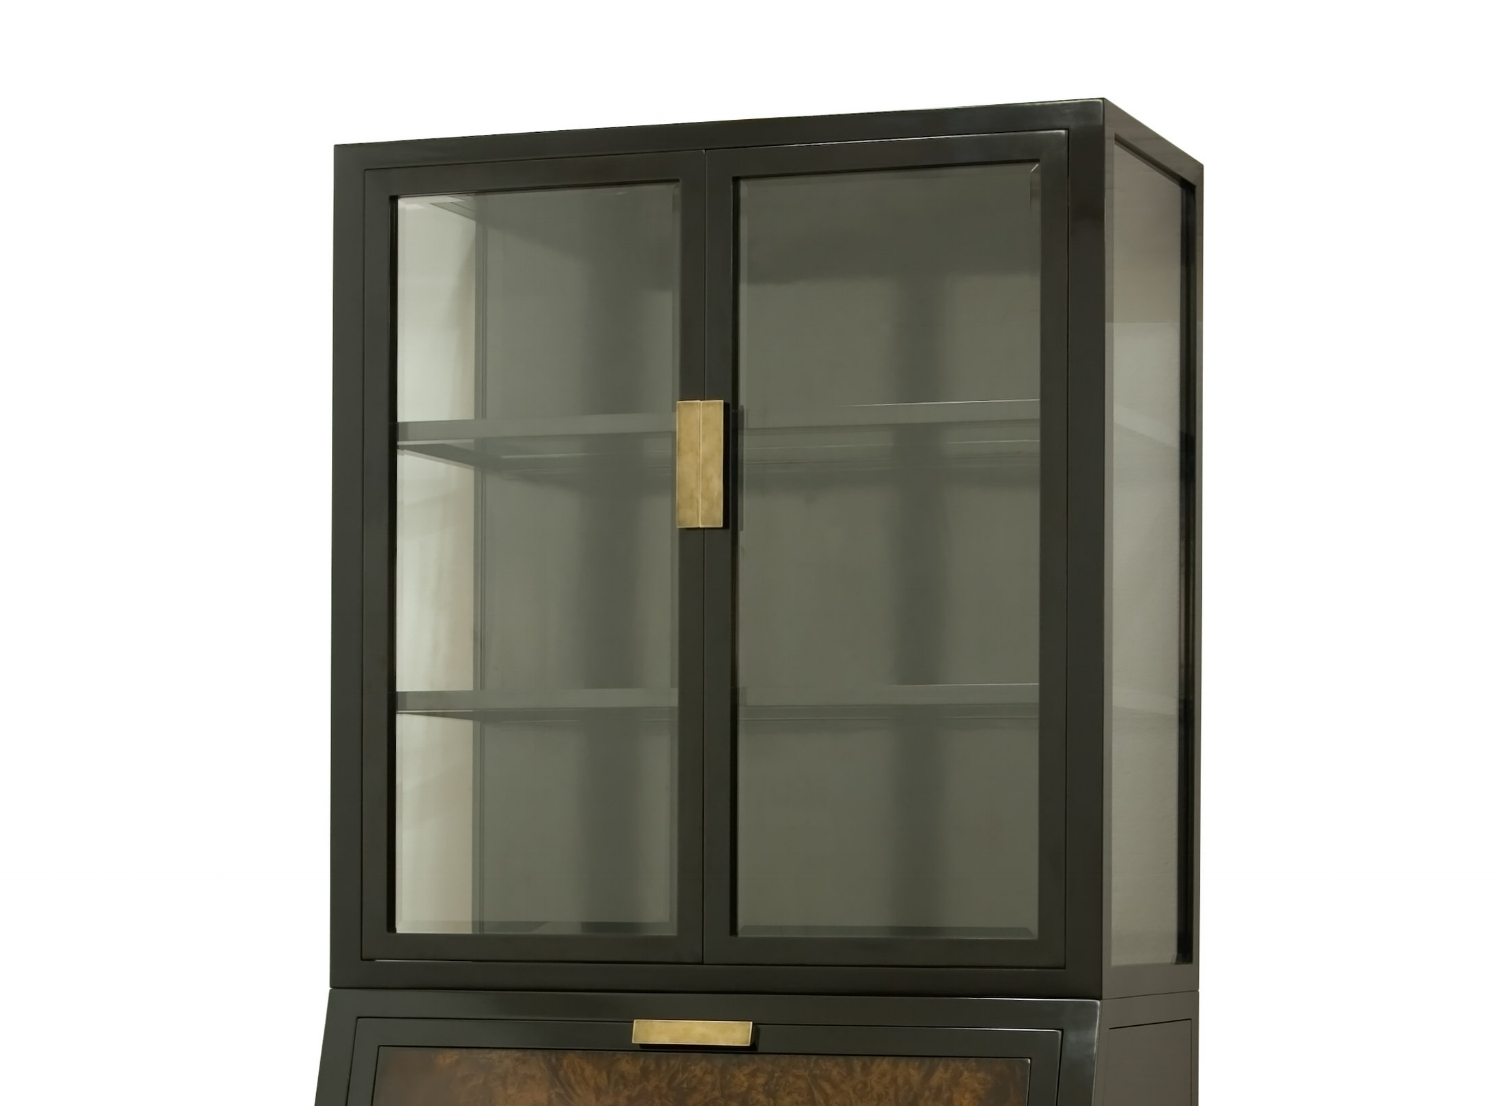 ....Ming Style Chinese furniture : Compound display cabinet..明式中式家具:组合展示柜....